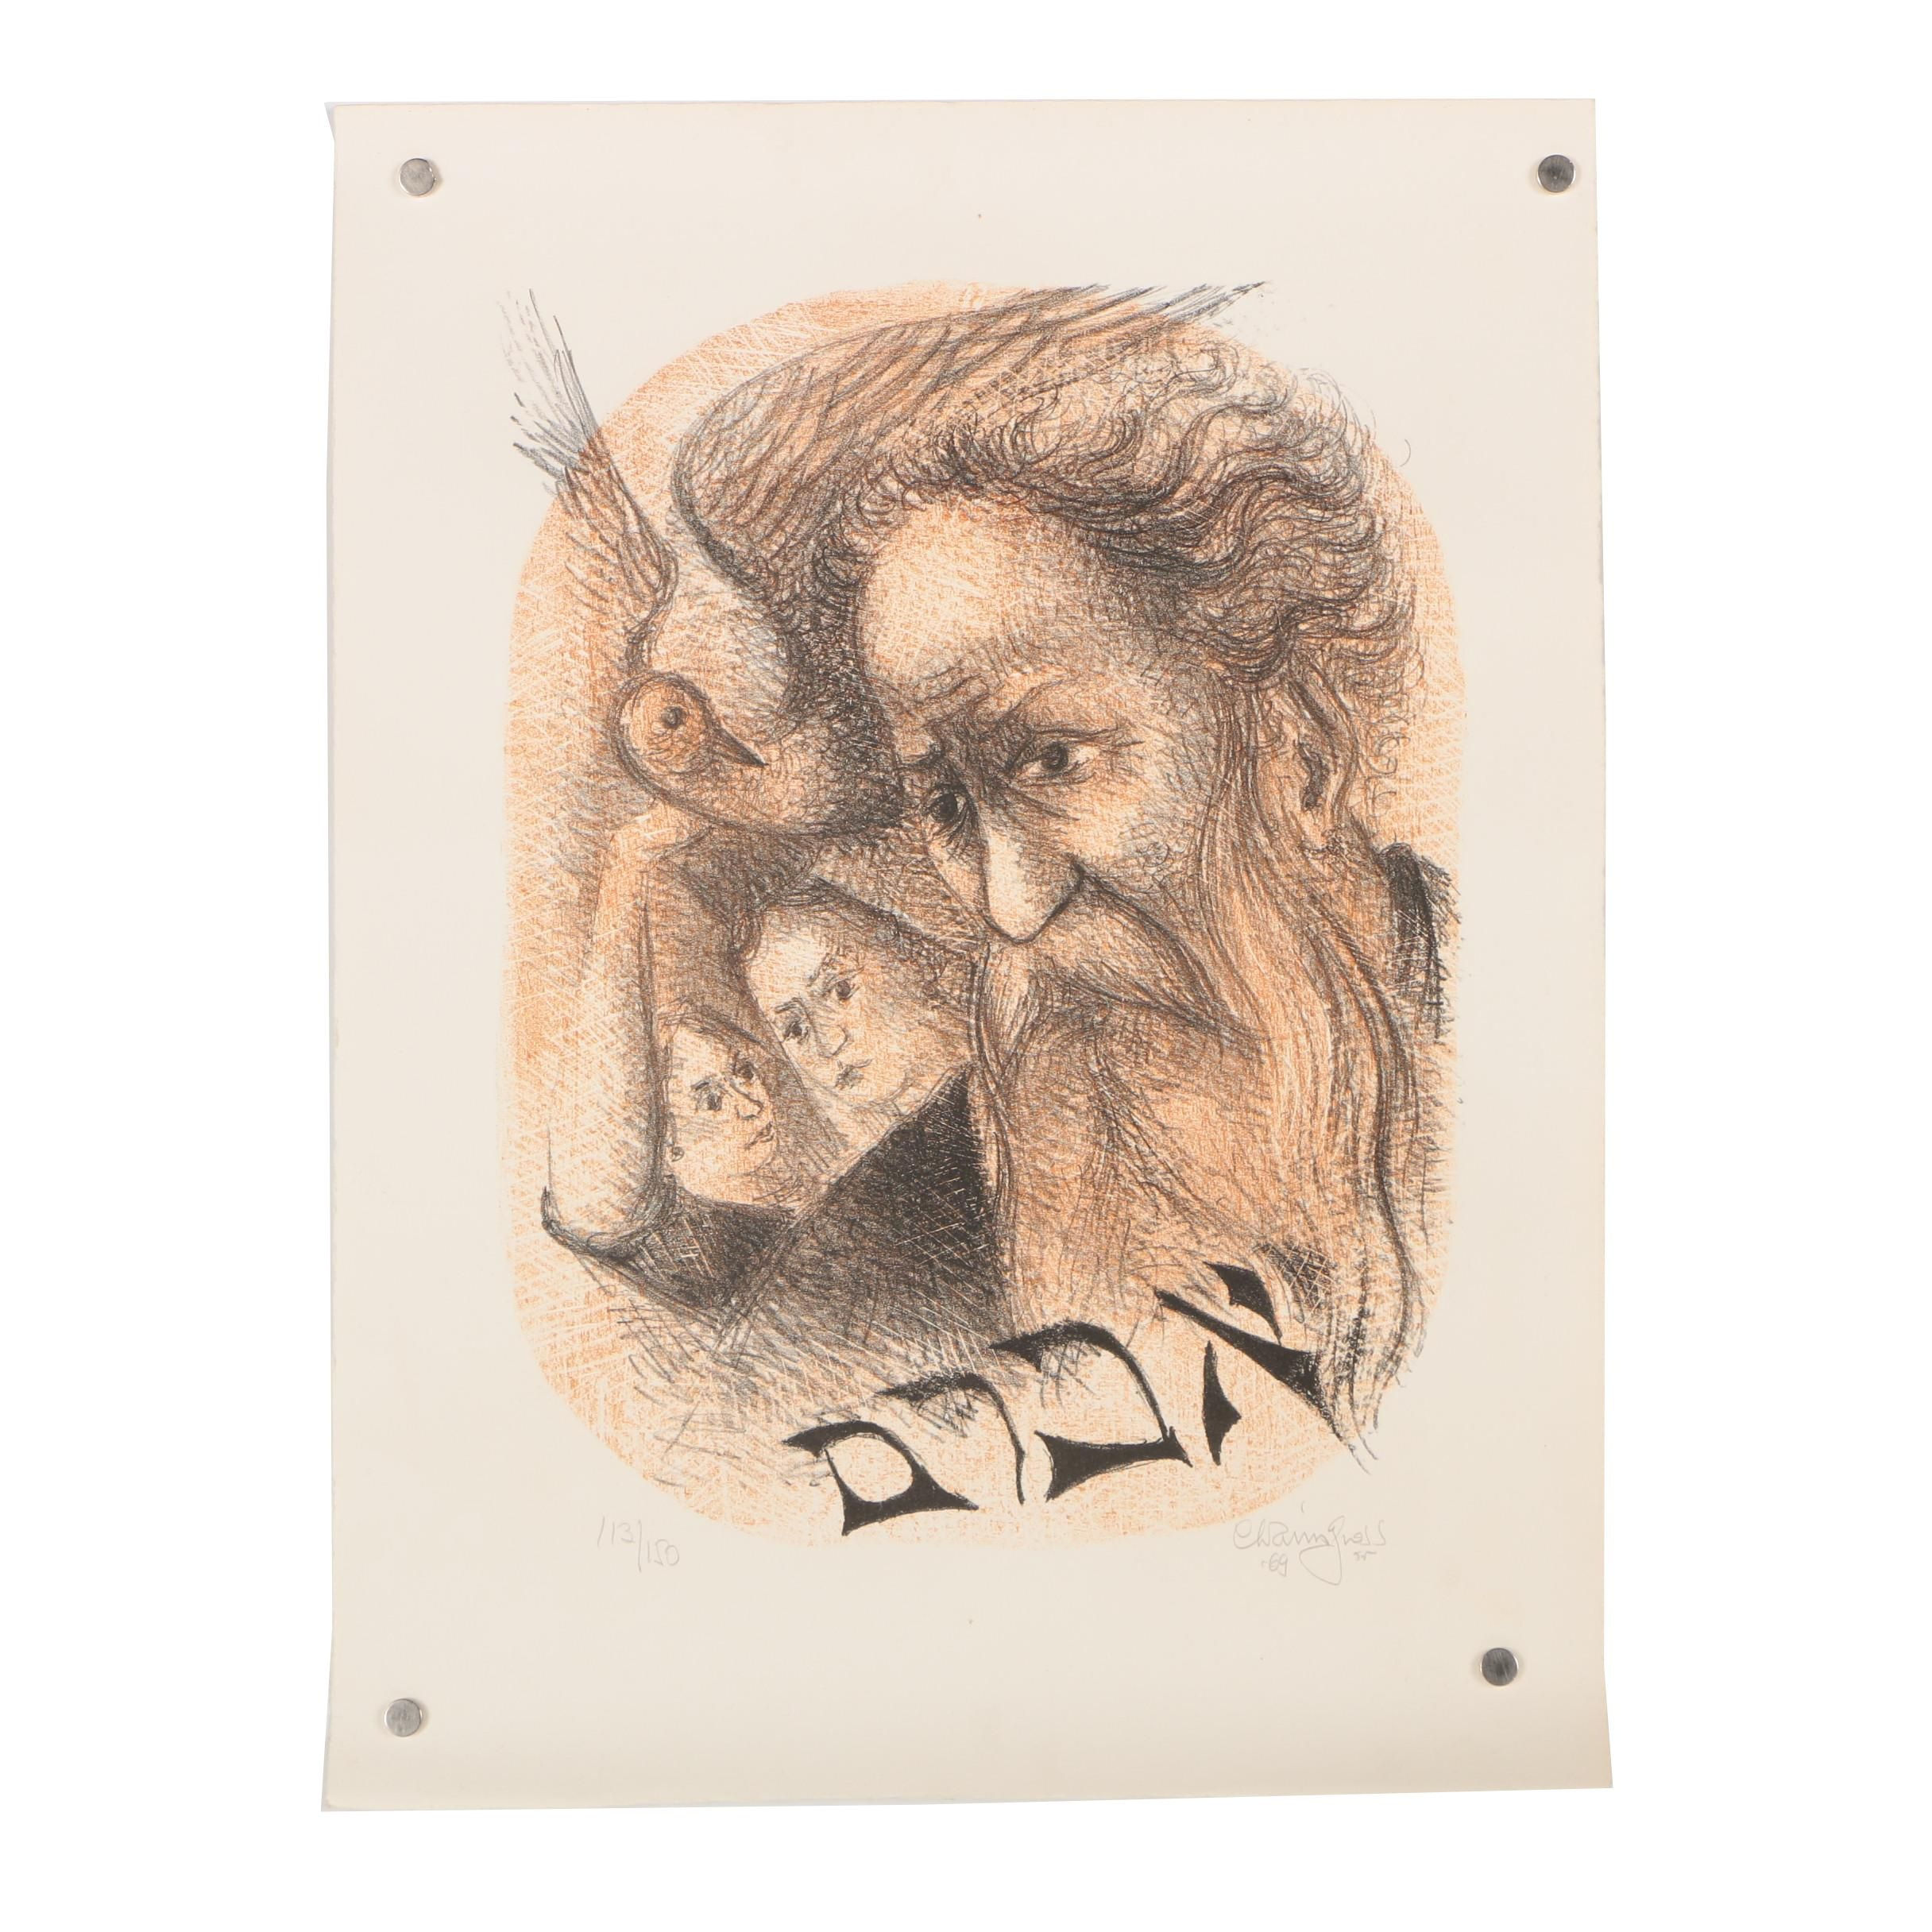 Chaim Gross Limited Edition Color Lithograph